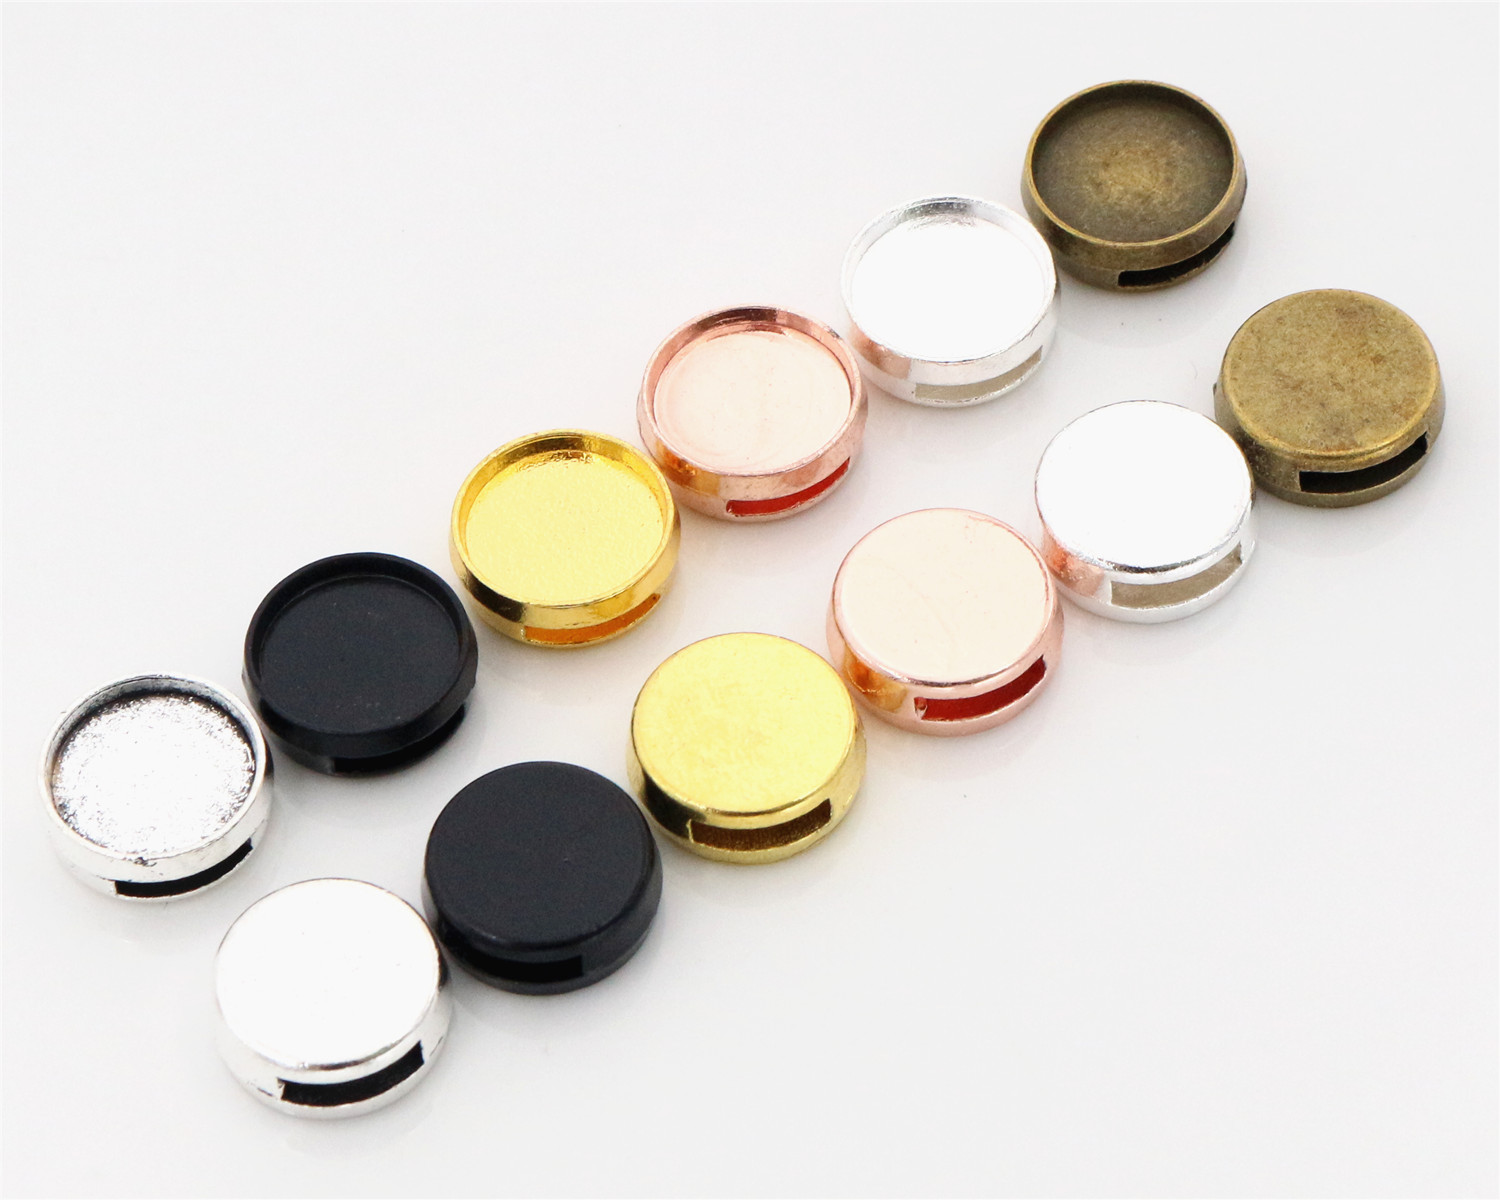 16pcs 12mm Inner Size 6 Colors Fashion Style Cabochon Base Cameo Setting Charms Pendant For 0.8mm Leather Bracelet16pcs 12mm Inner Size 6 Colors Fashion Style Cabochon Base Cameo Setting Charms Pendant For 0.8mm Leather Bracelet